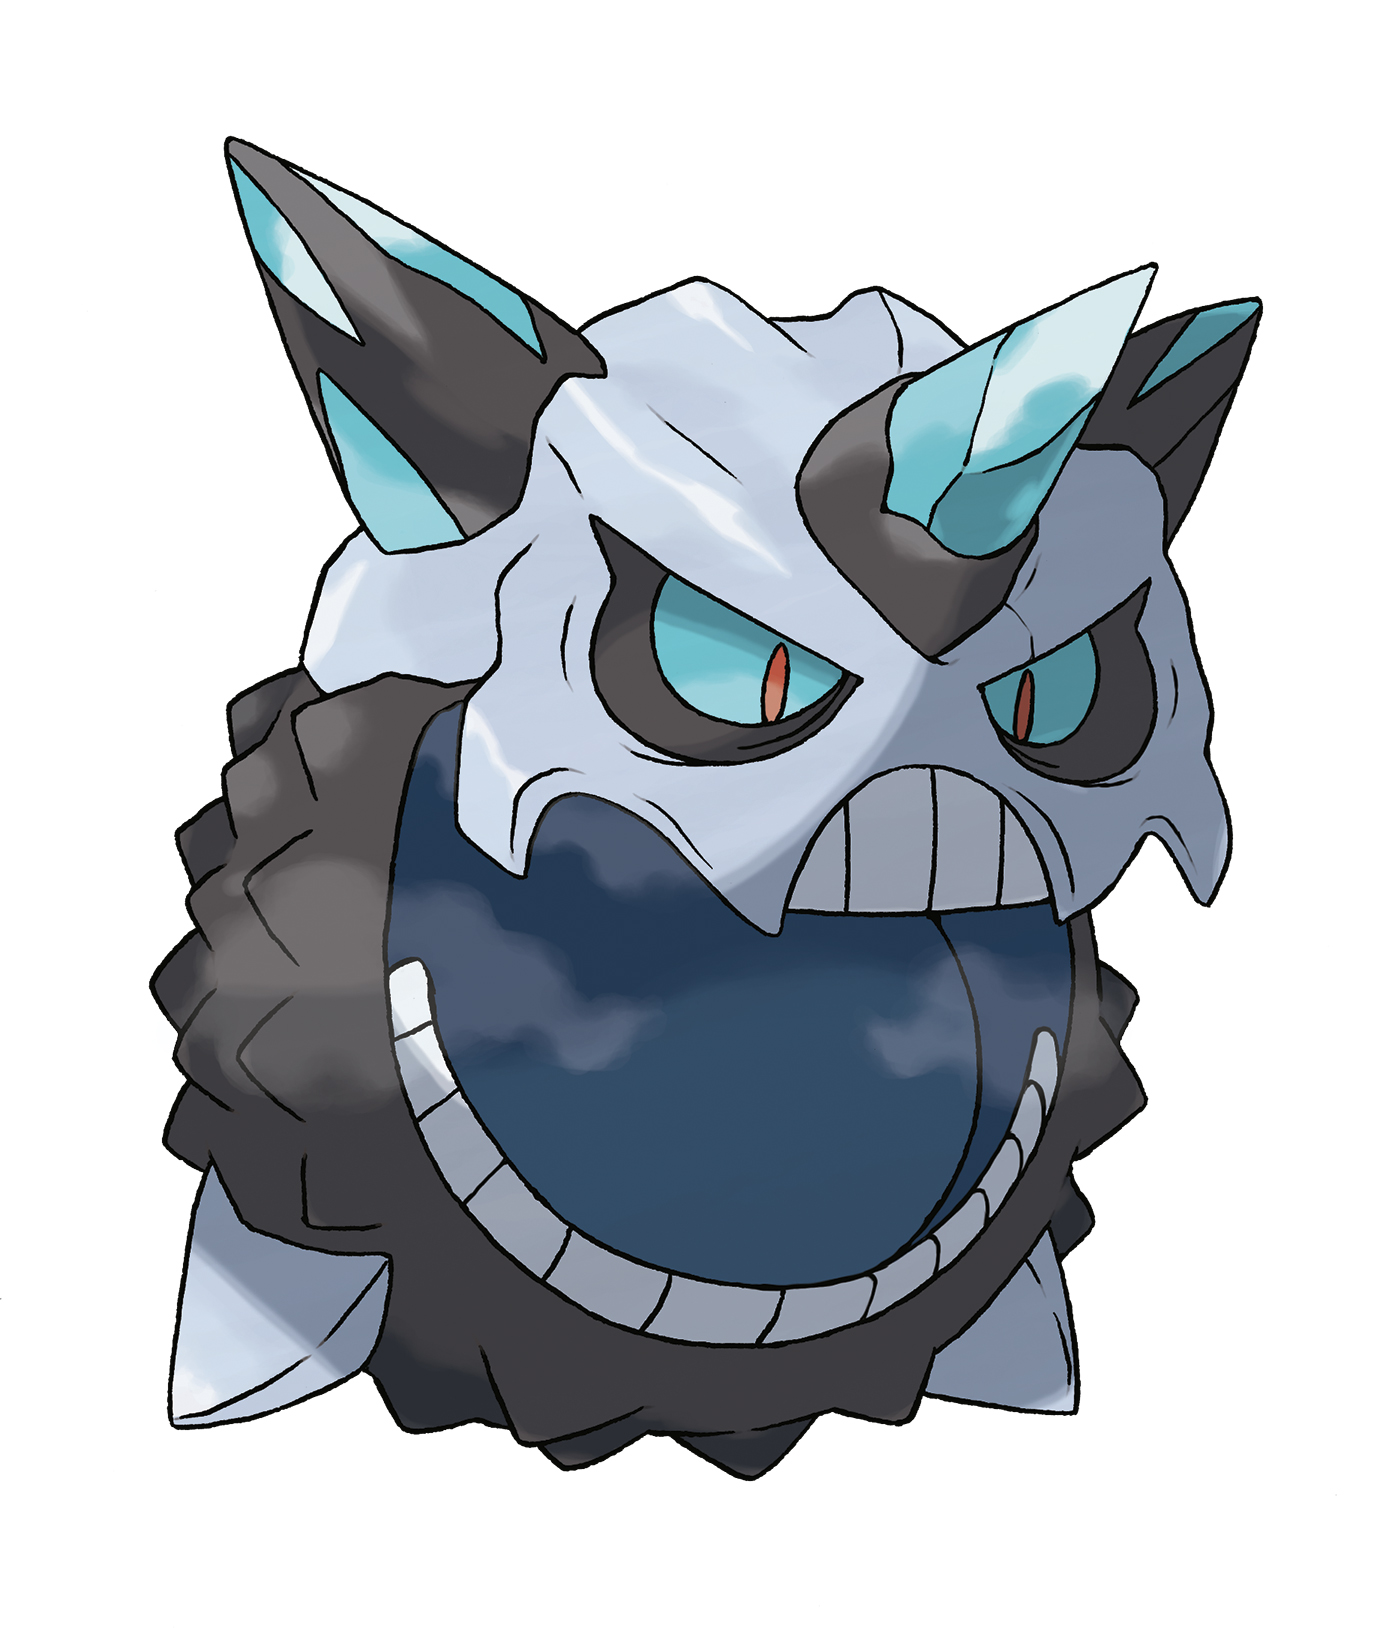 Mega Glalie in Omega Ruby and Alpha Sapphire